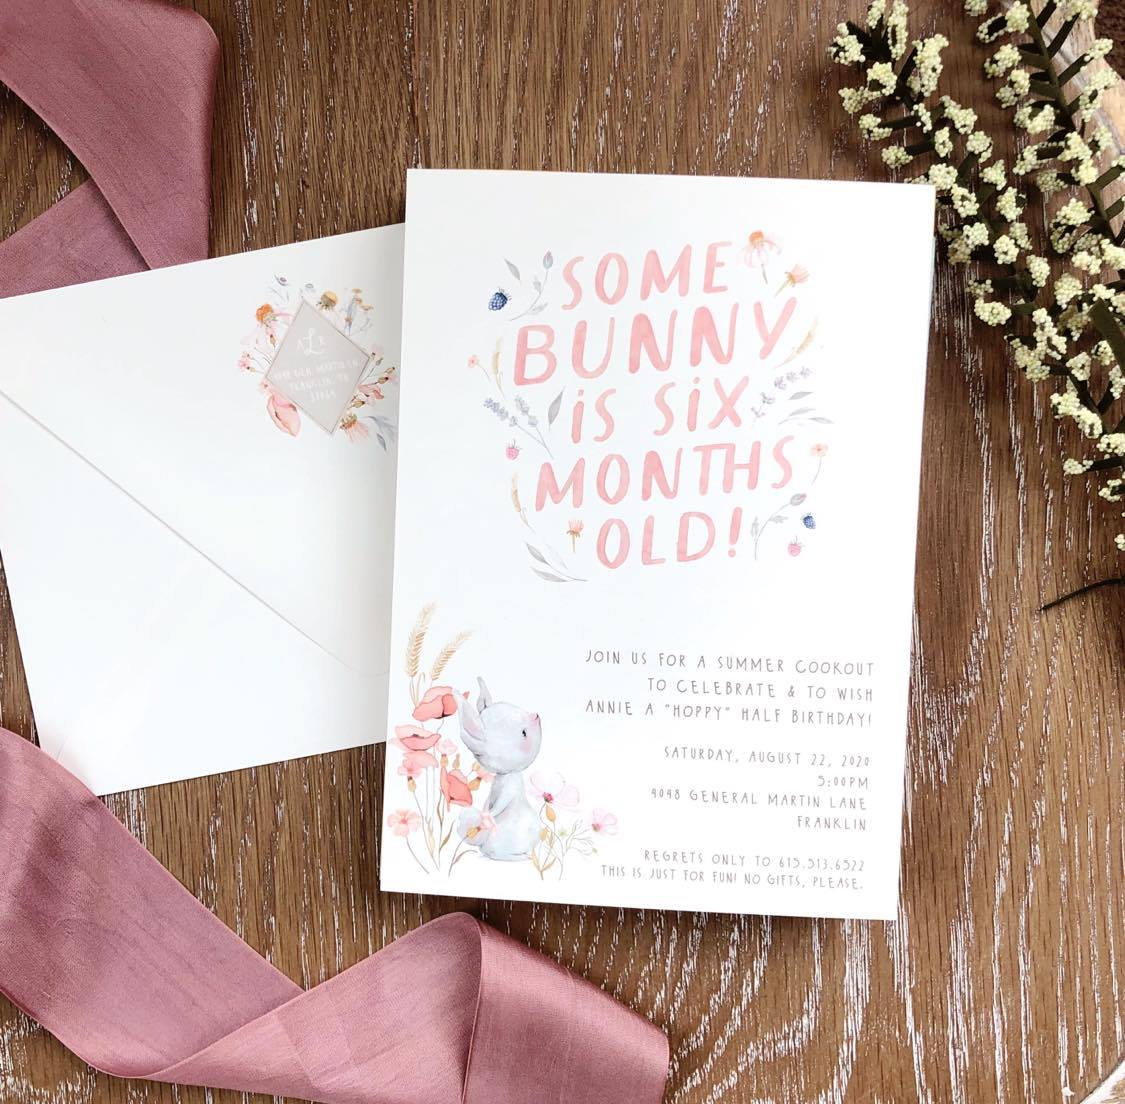 Darby Cards: Woodland Themed Half Birthday Party featured on Nashville Baby Guide